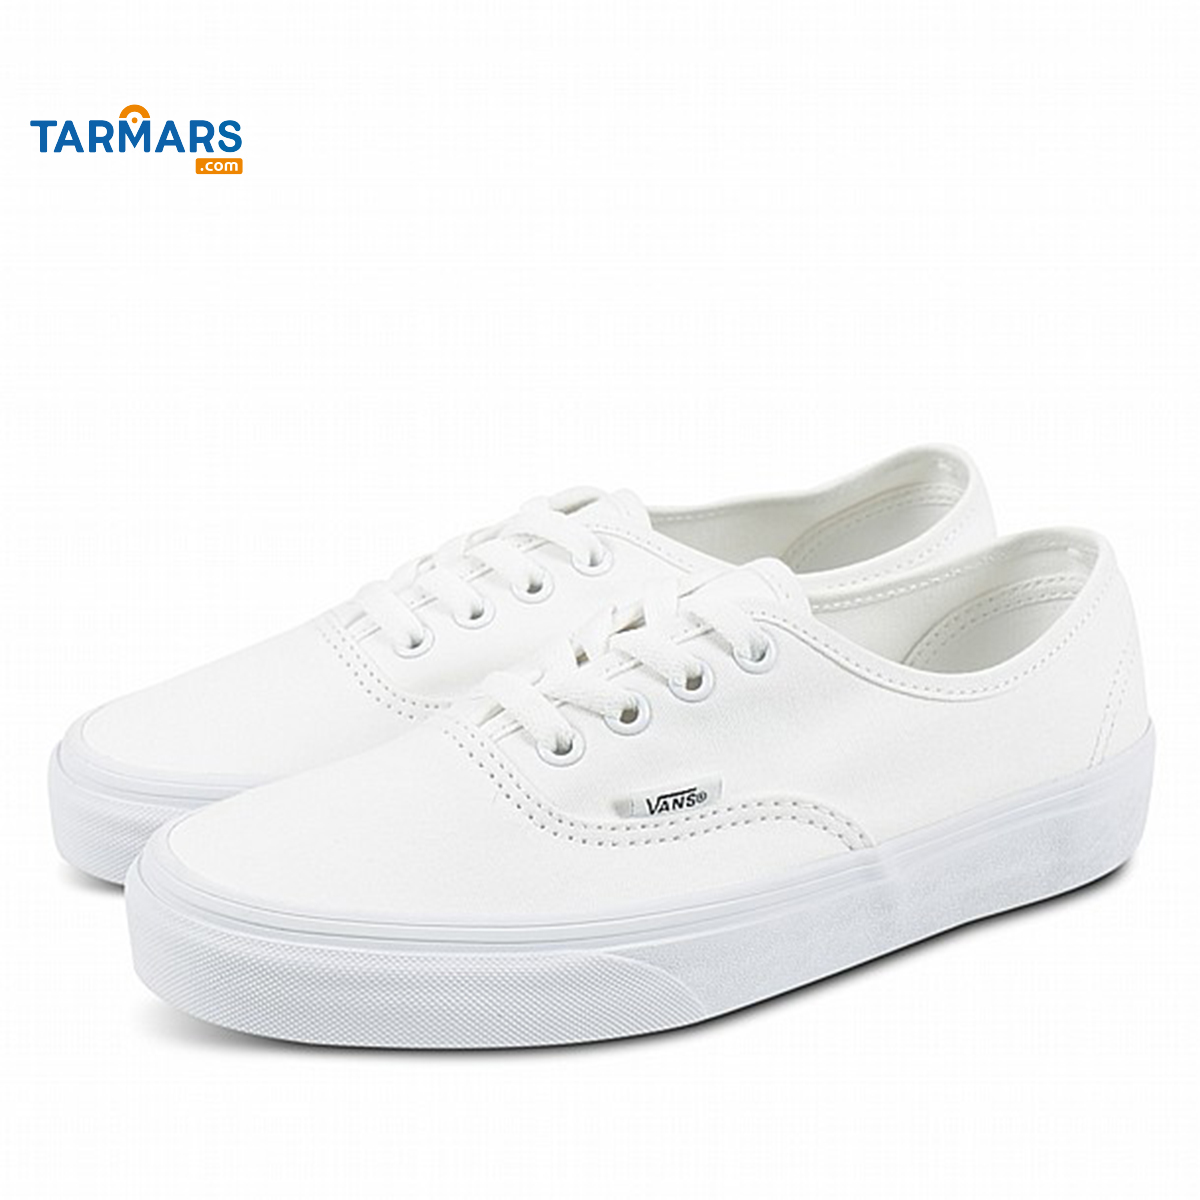 VANS AUTHENTIC VN000EE3W001